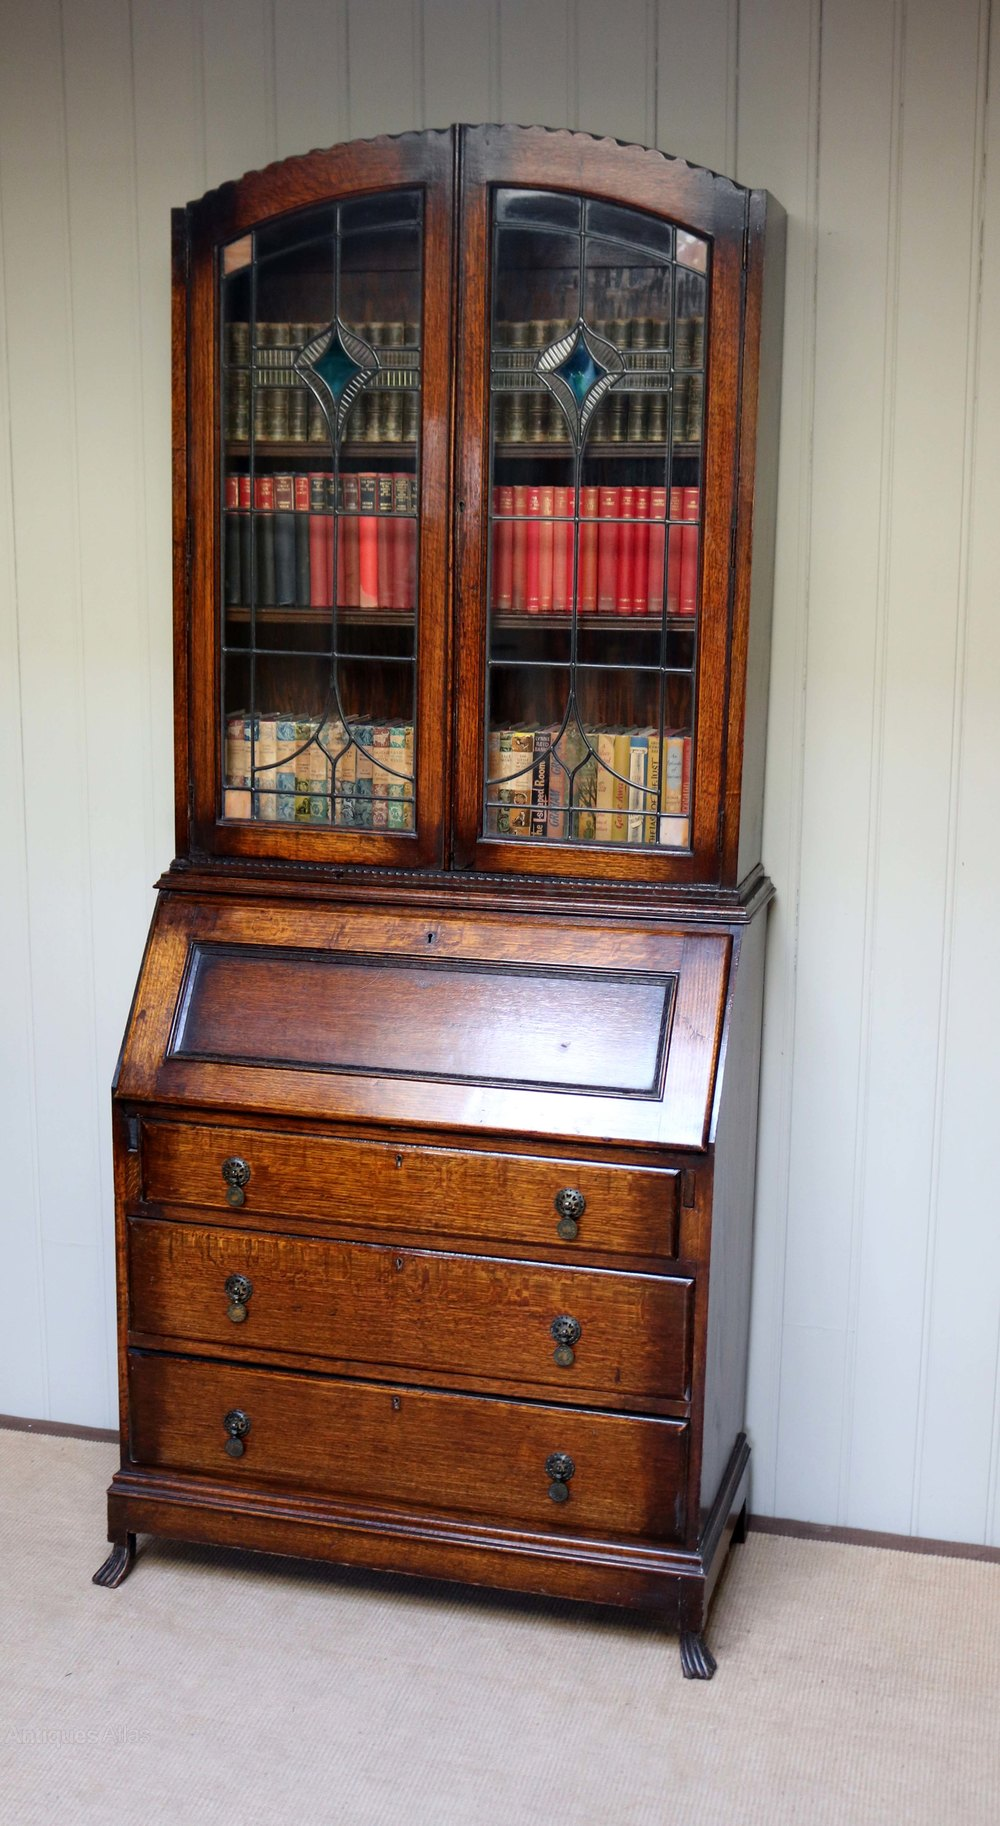 Antique Bookcase Bureau In Oak Late Victorian Early 20th Centrury Nice Condition High Quality Edwardian (1901-1910)